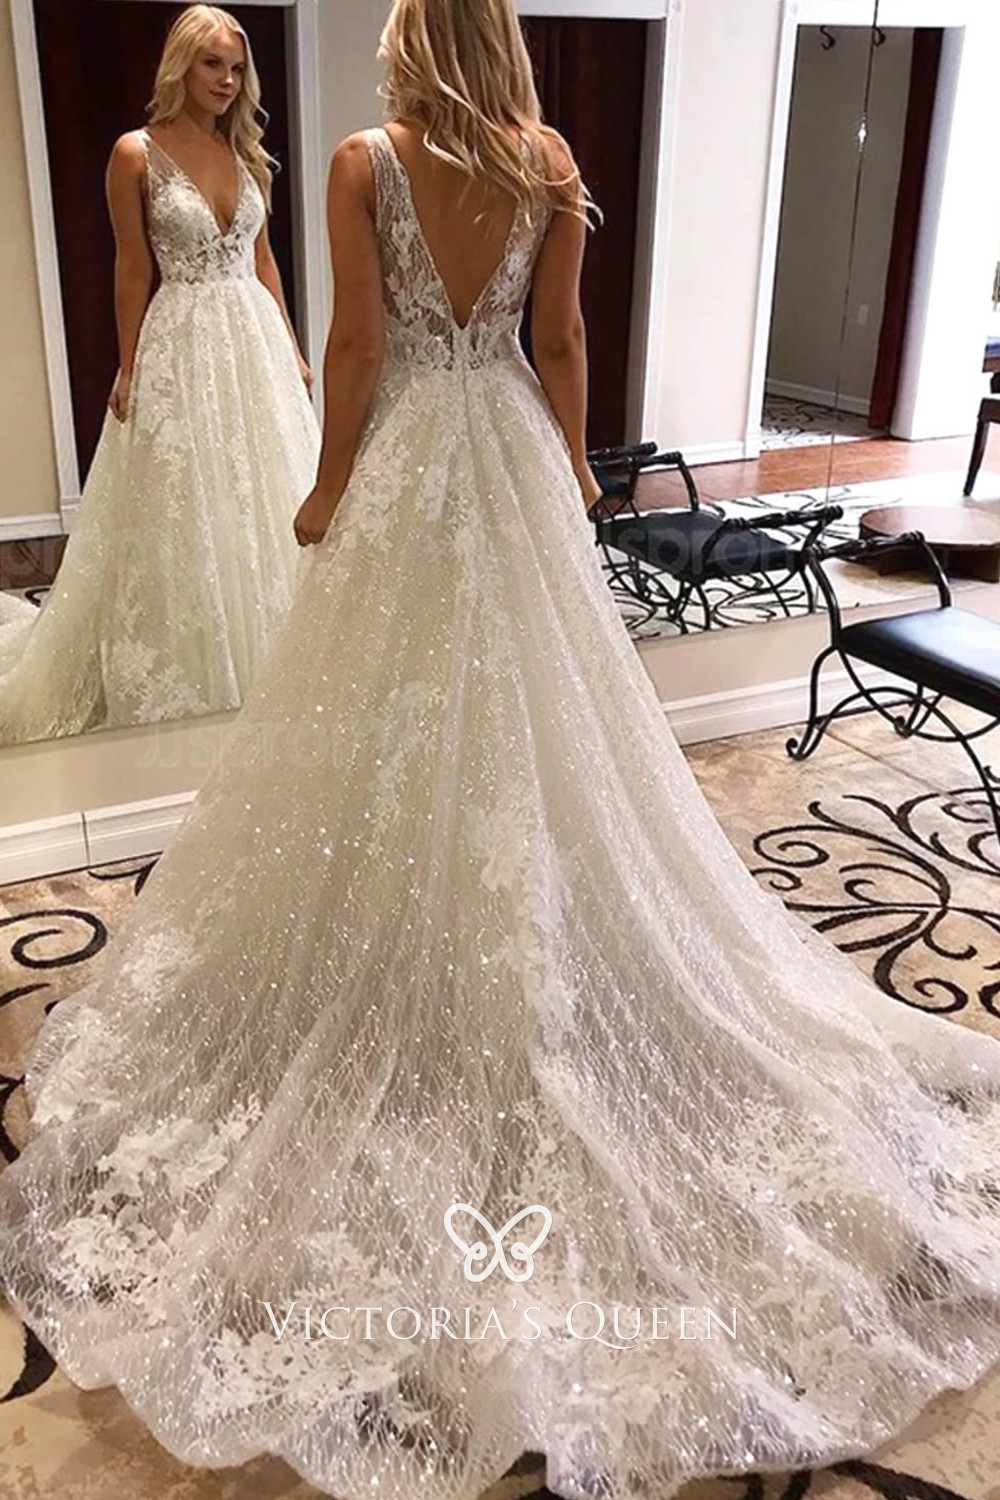 Glitter Mesh Lace Plunging V Neck Fall Wedding Dress